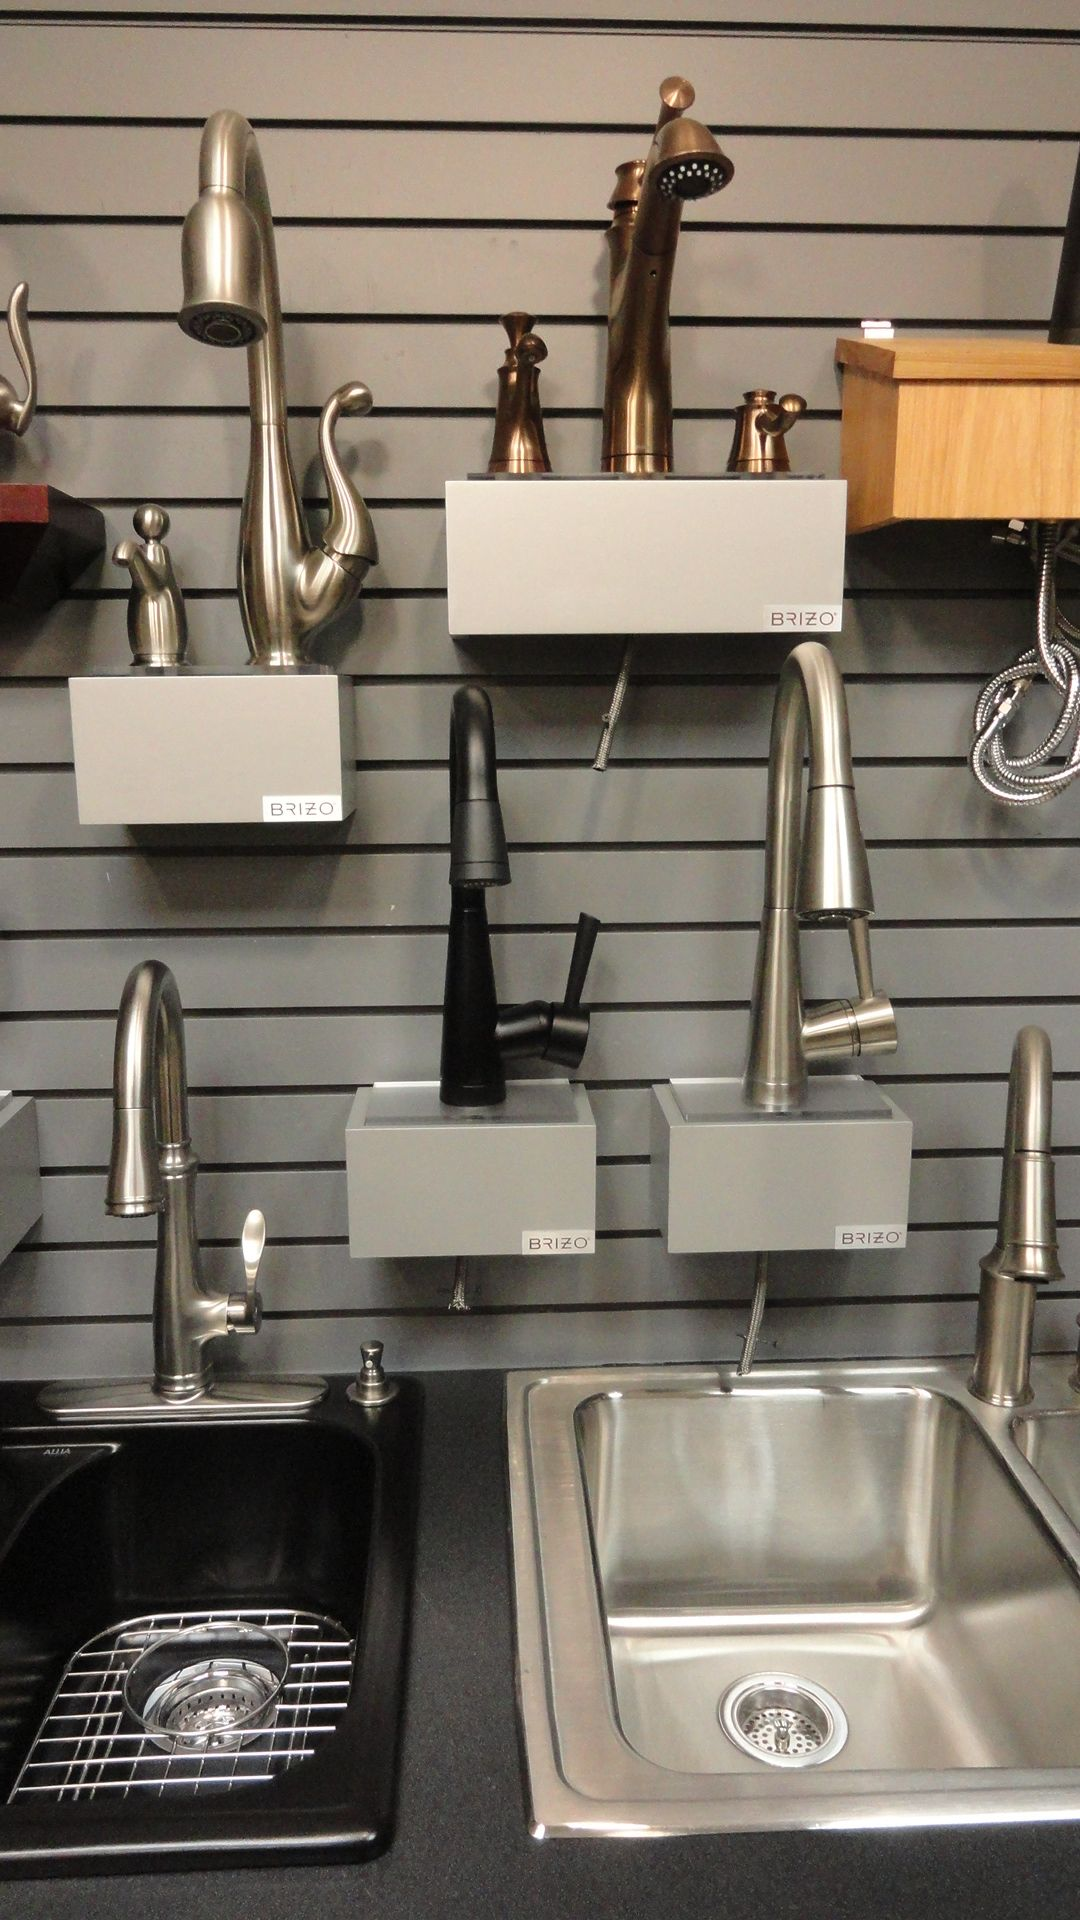 Brizo Faucets, Brizo Kitchen Faucets and Accessories in our Denver ...